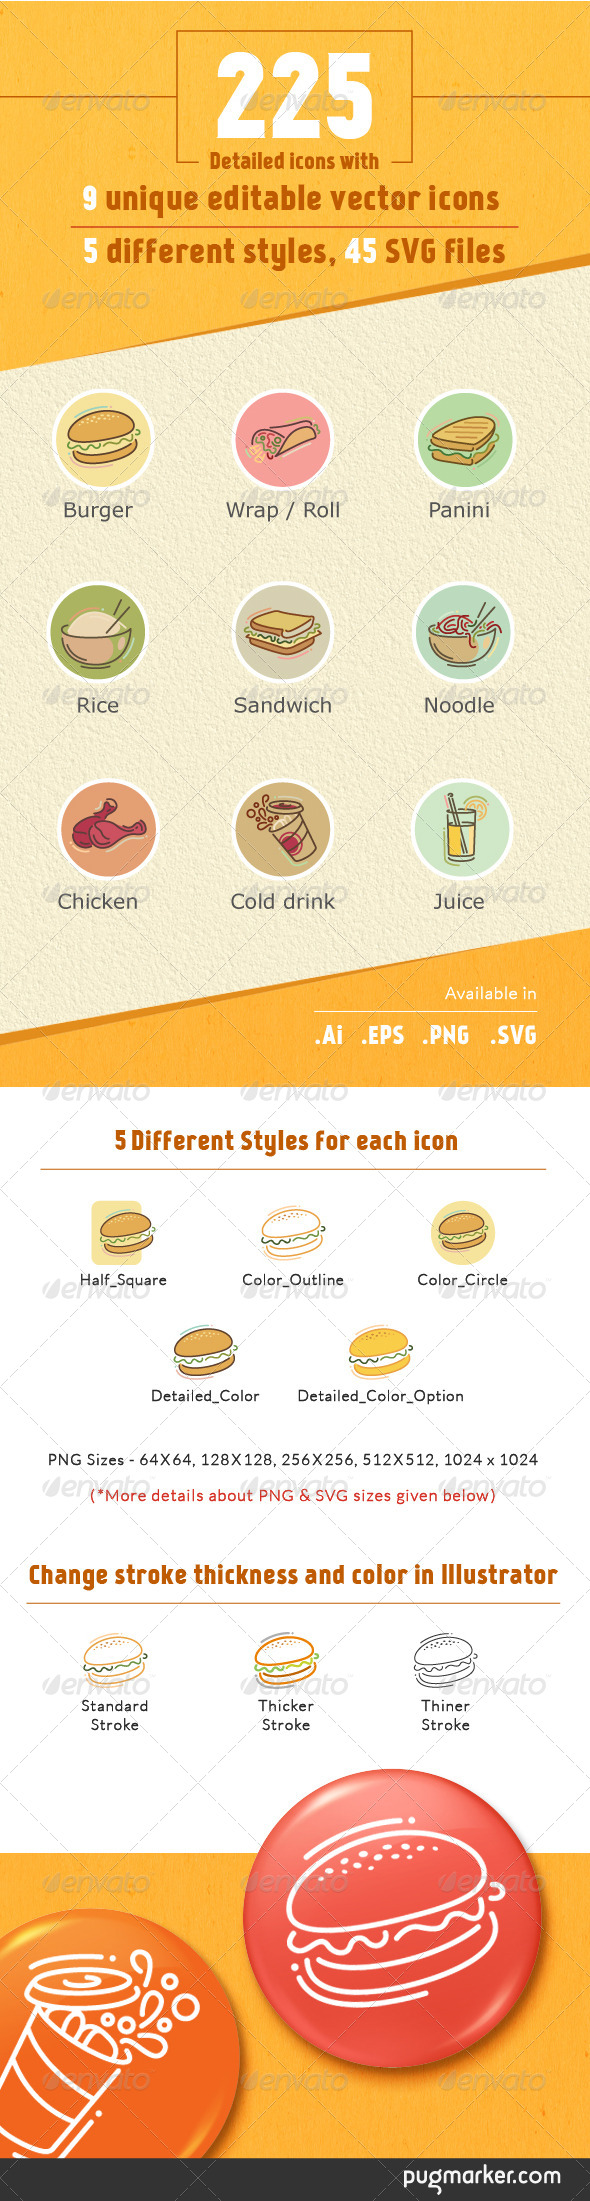 GraphicRiver Stylish Food Icons 8676039 Created: